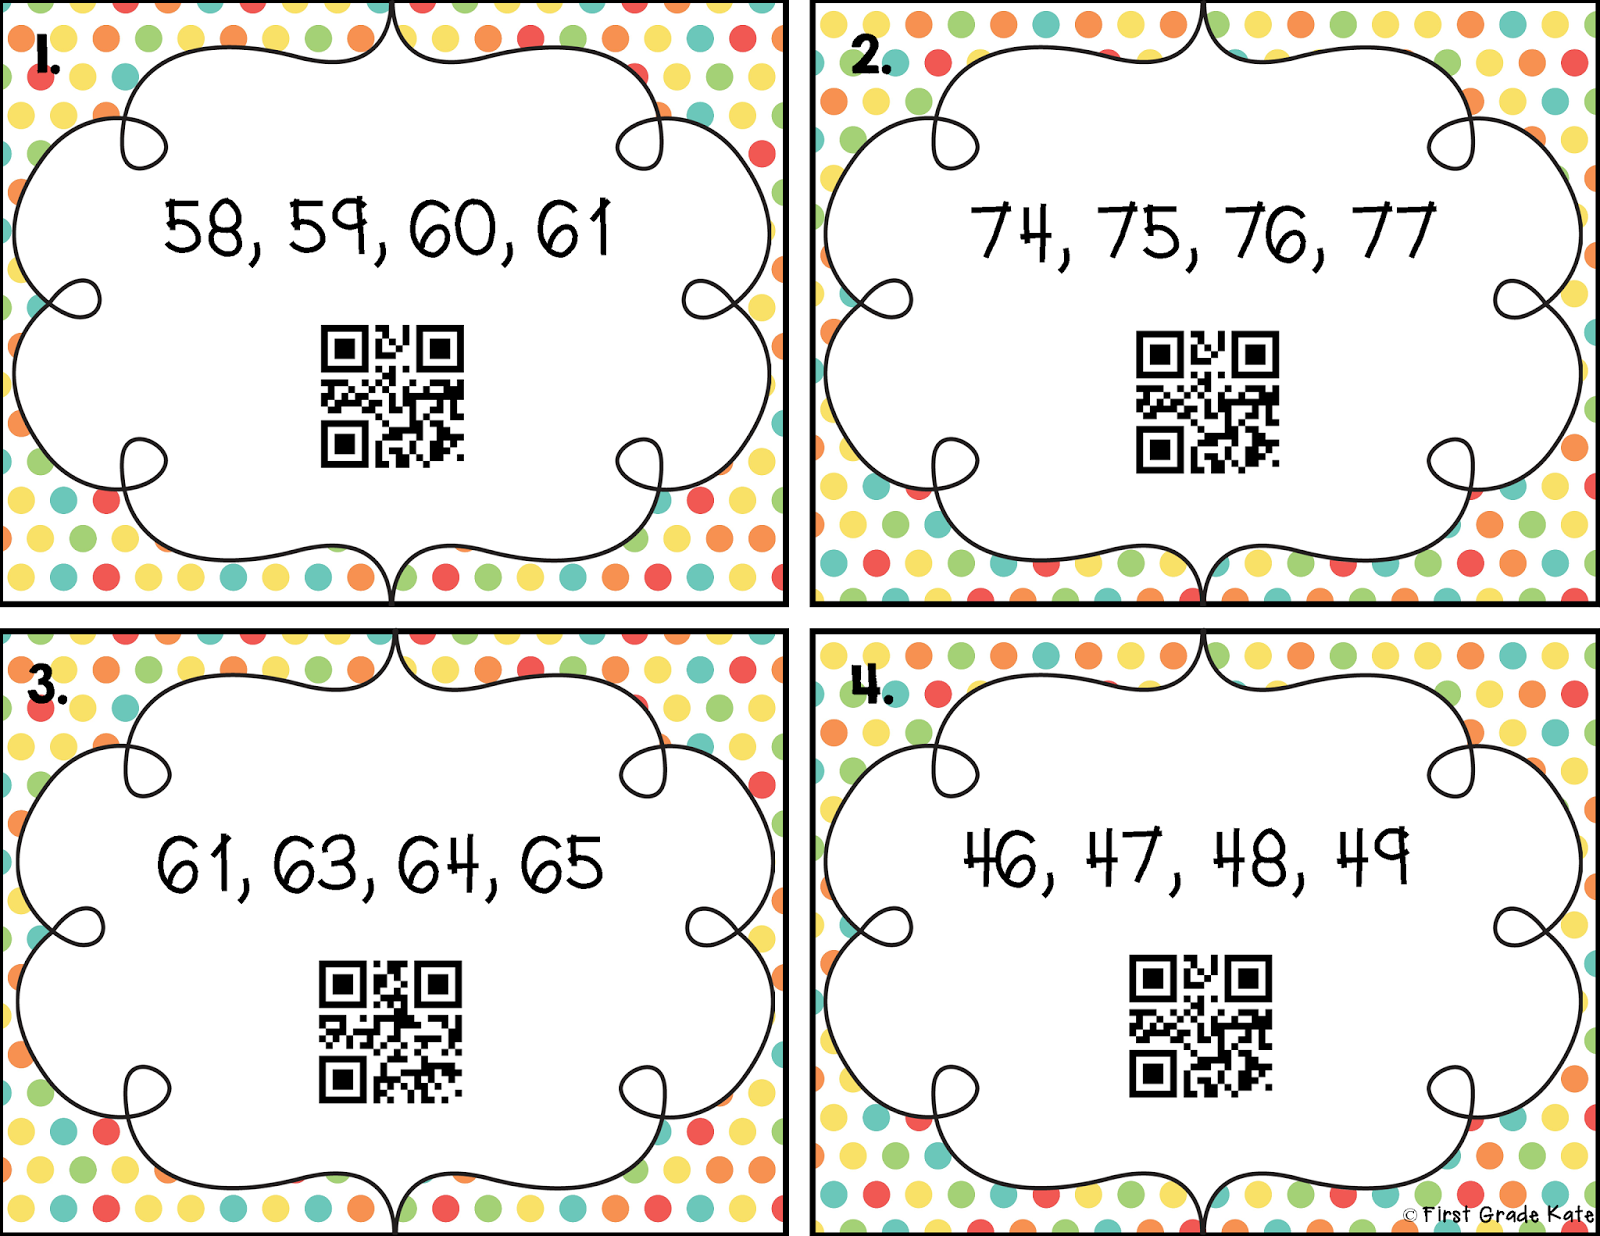 First Grade Kate My Latest Experiment Eating Qr Codes